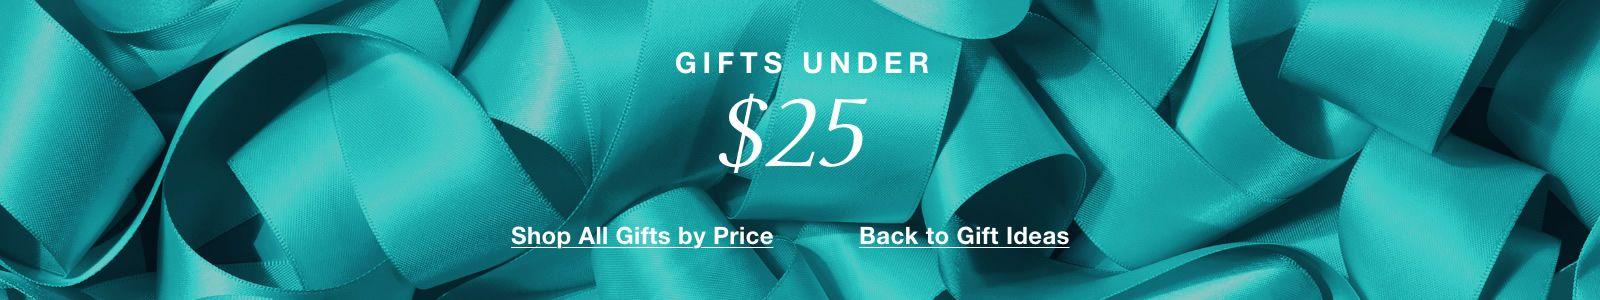 Gift Under, $25, Shop All Gifts by Price, Back to Gift Ideas